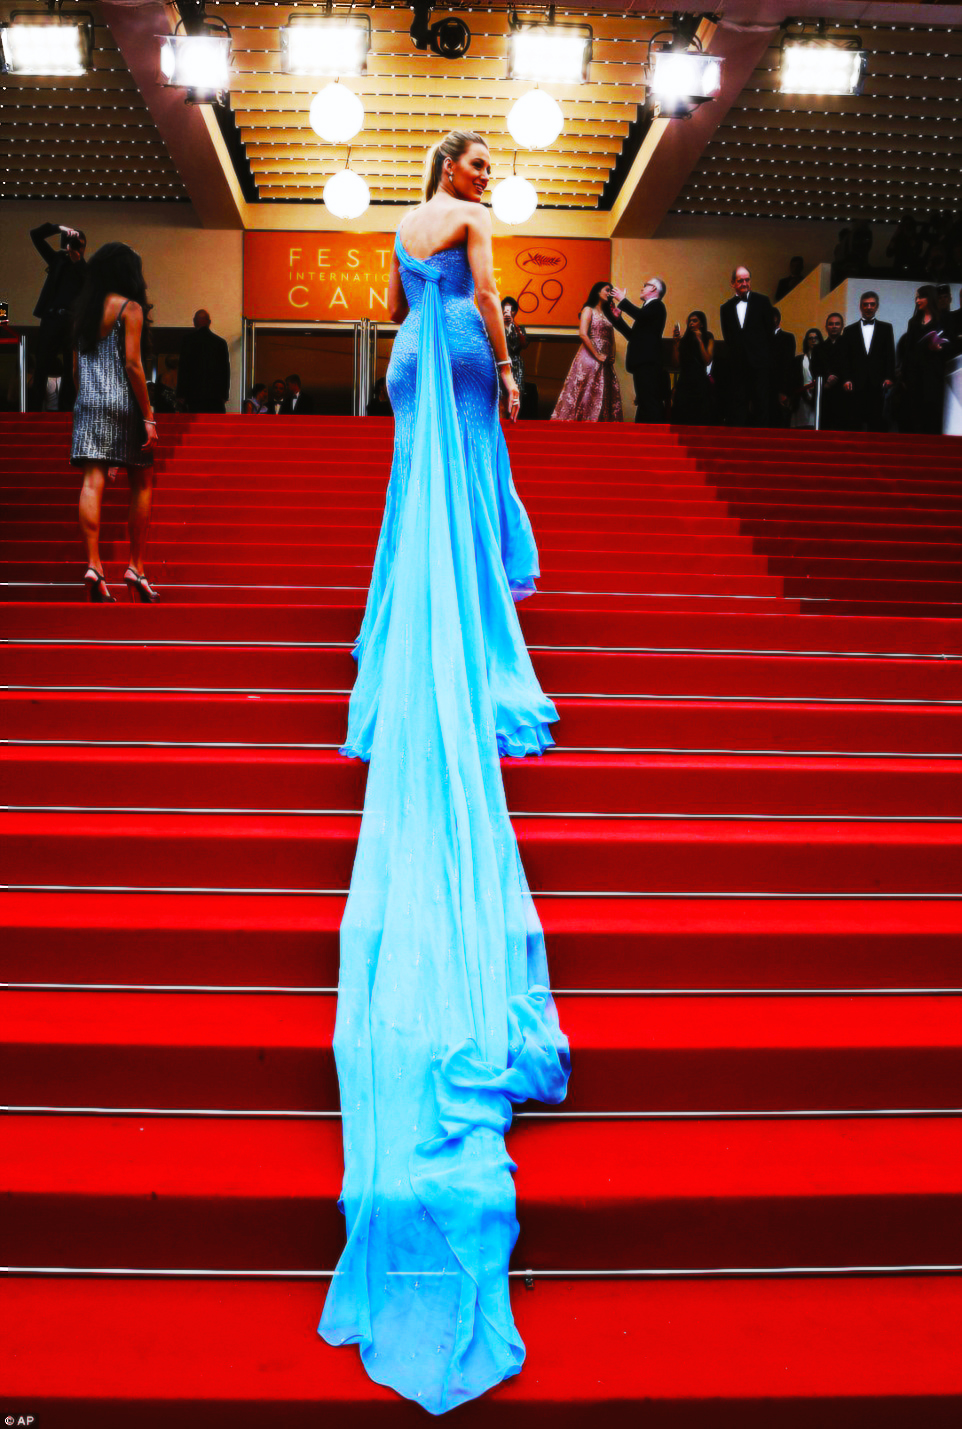 blake lively, cannes, fashion